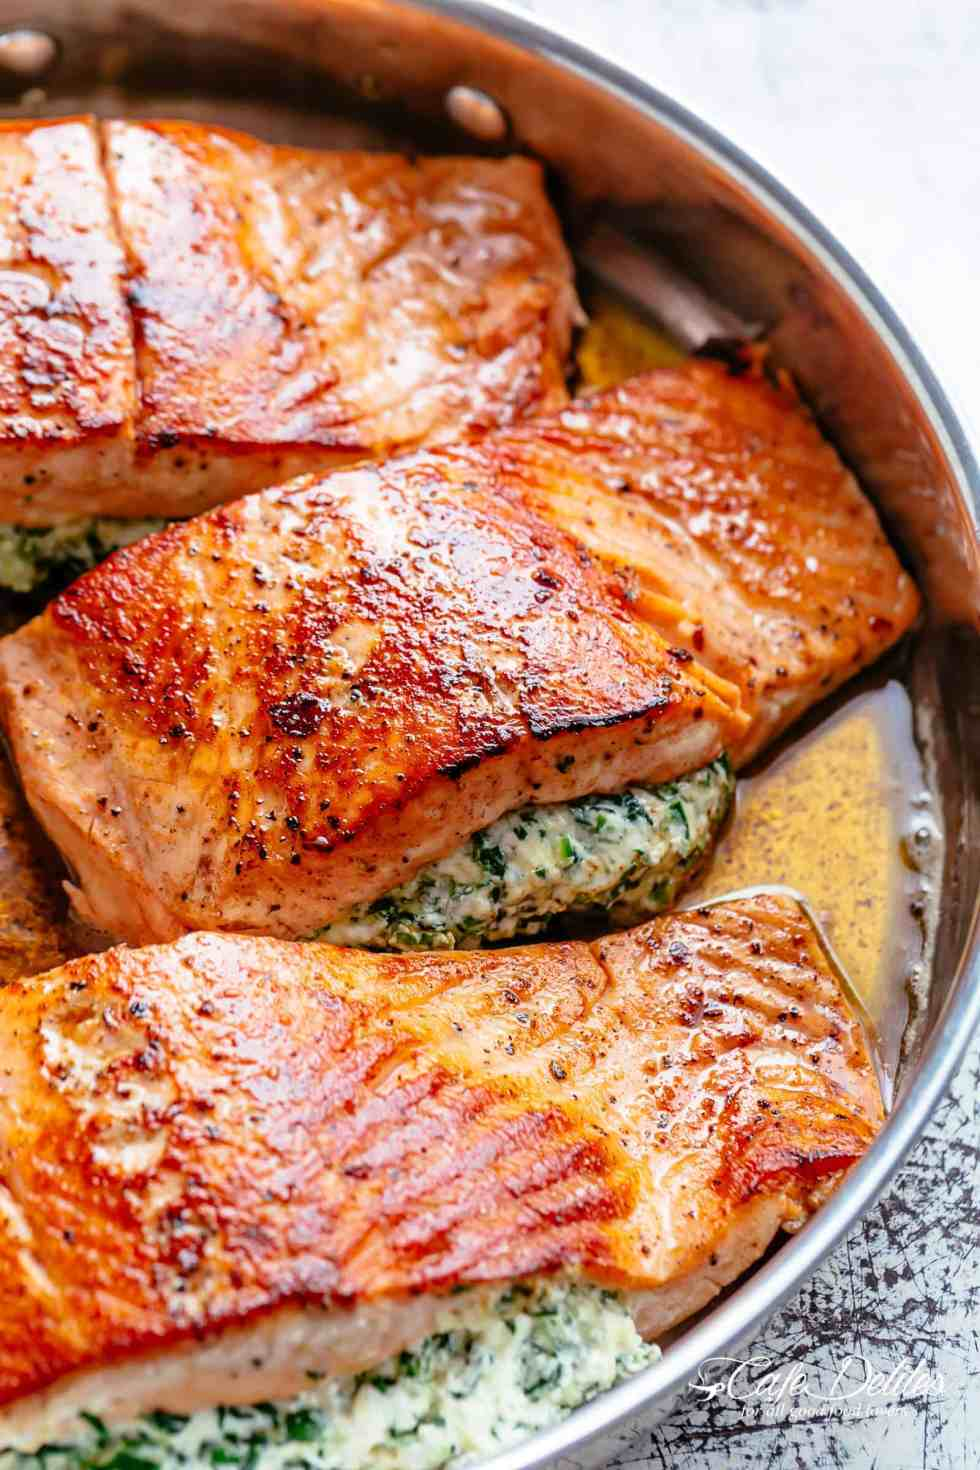 Creamy Spinach Stuffed Salmon in garlic butter is a new delicious way to enjoy salmon! Filled with cream cheese, spinach, parmesan cheese and garlic, this salmon beats than anything found in a restaurant. Your new favourite salmon recipe includes pan fried AND oven baked methods! | cafedelites.com